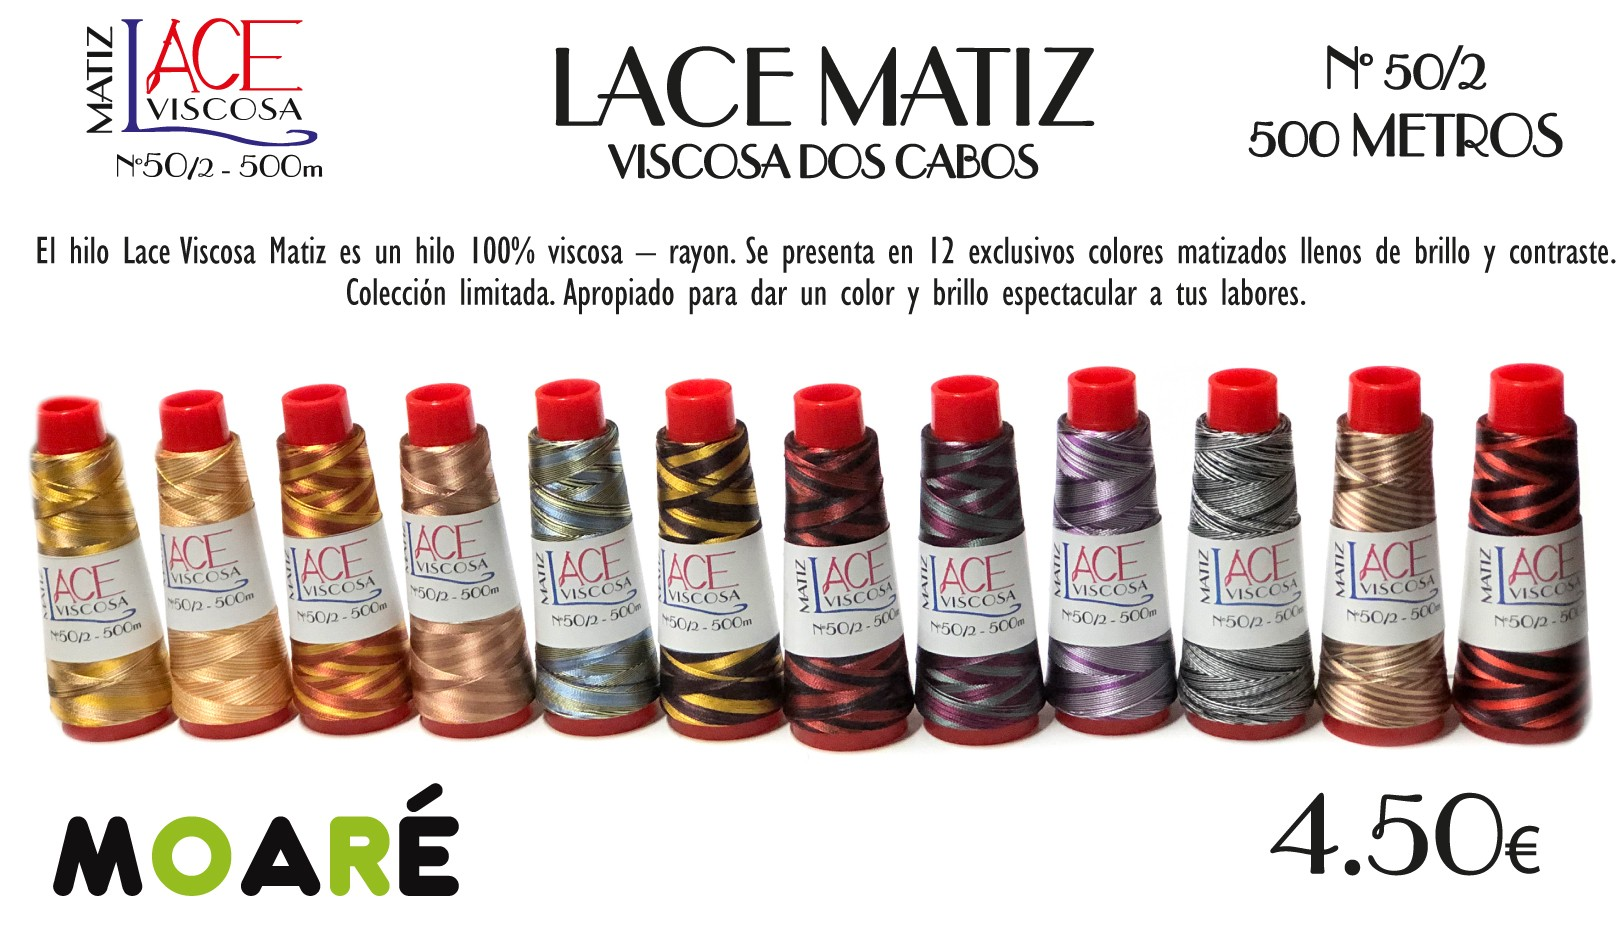 VISCOSA lace matiz